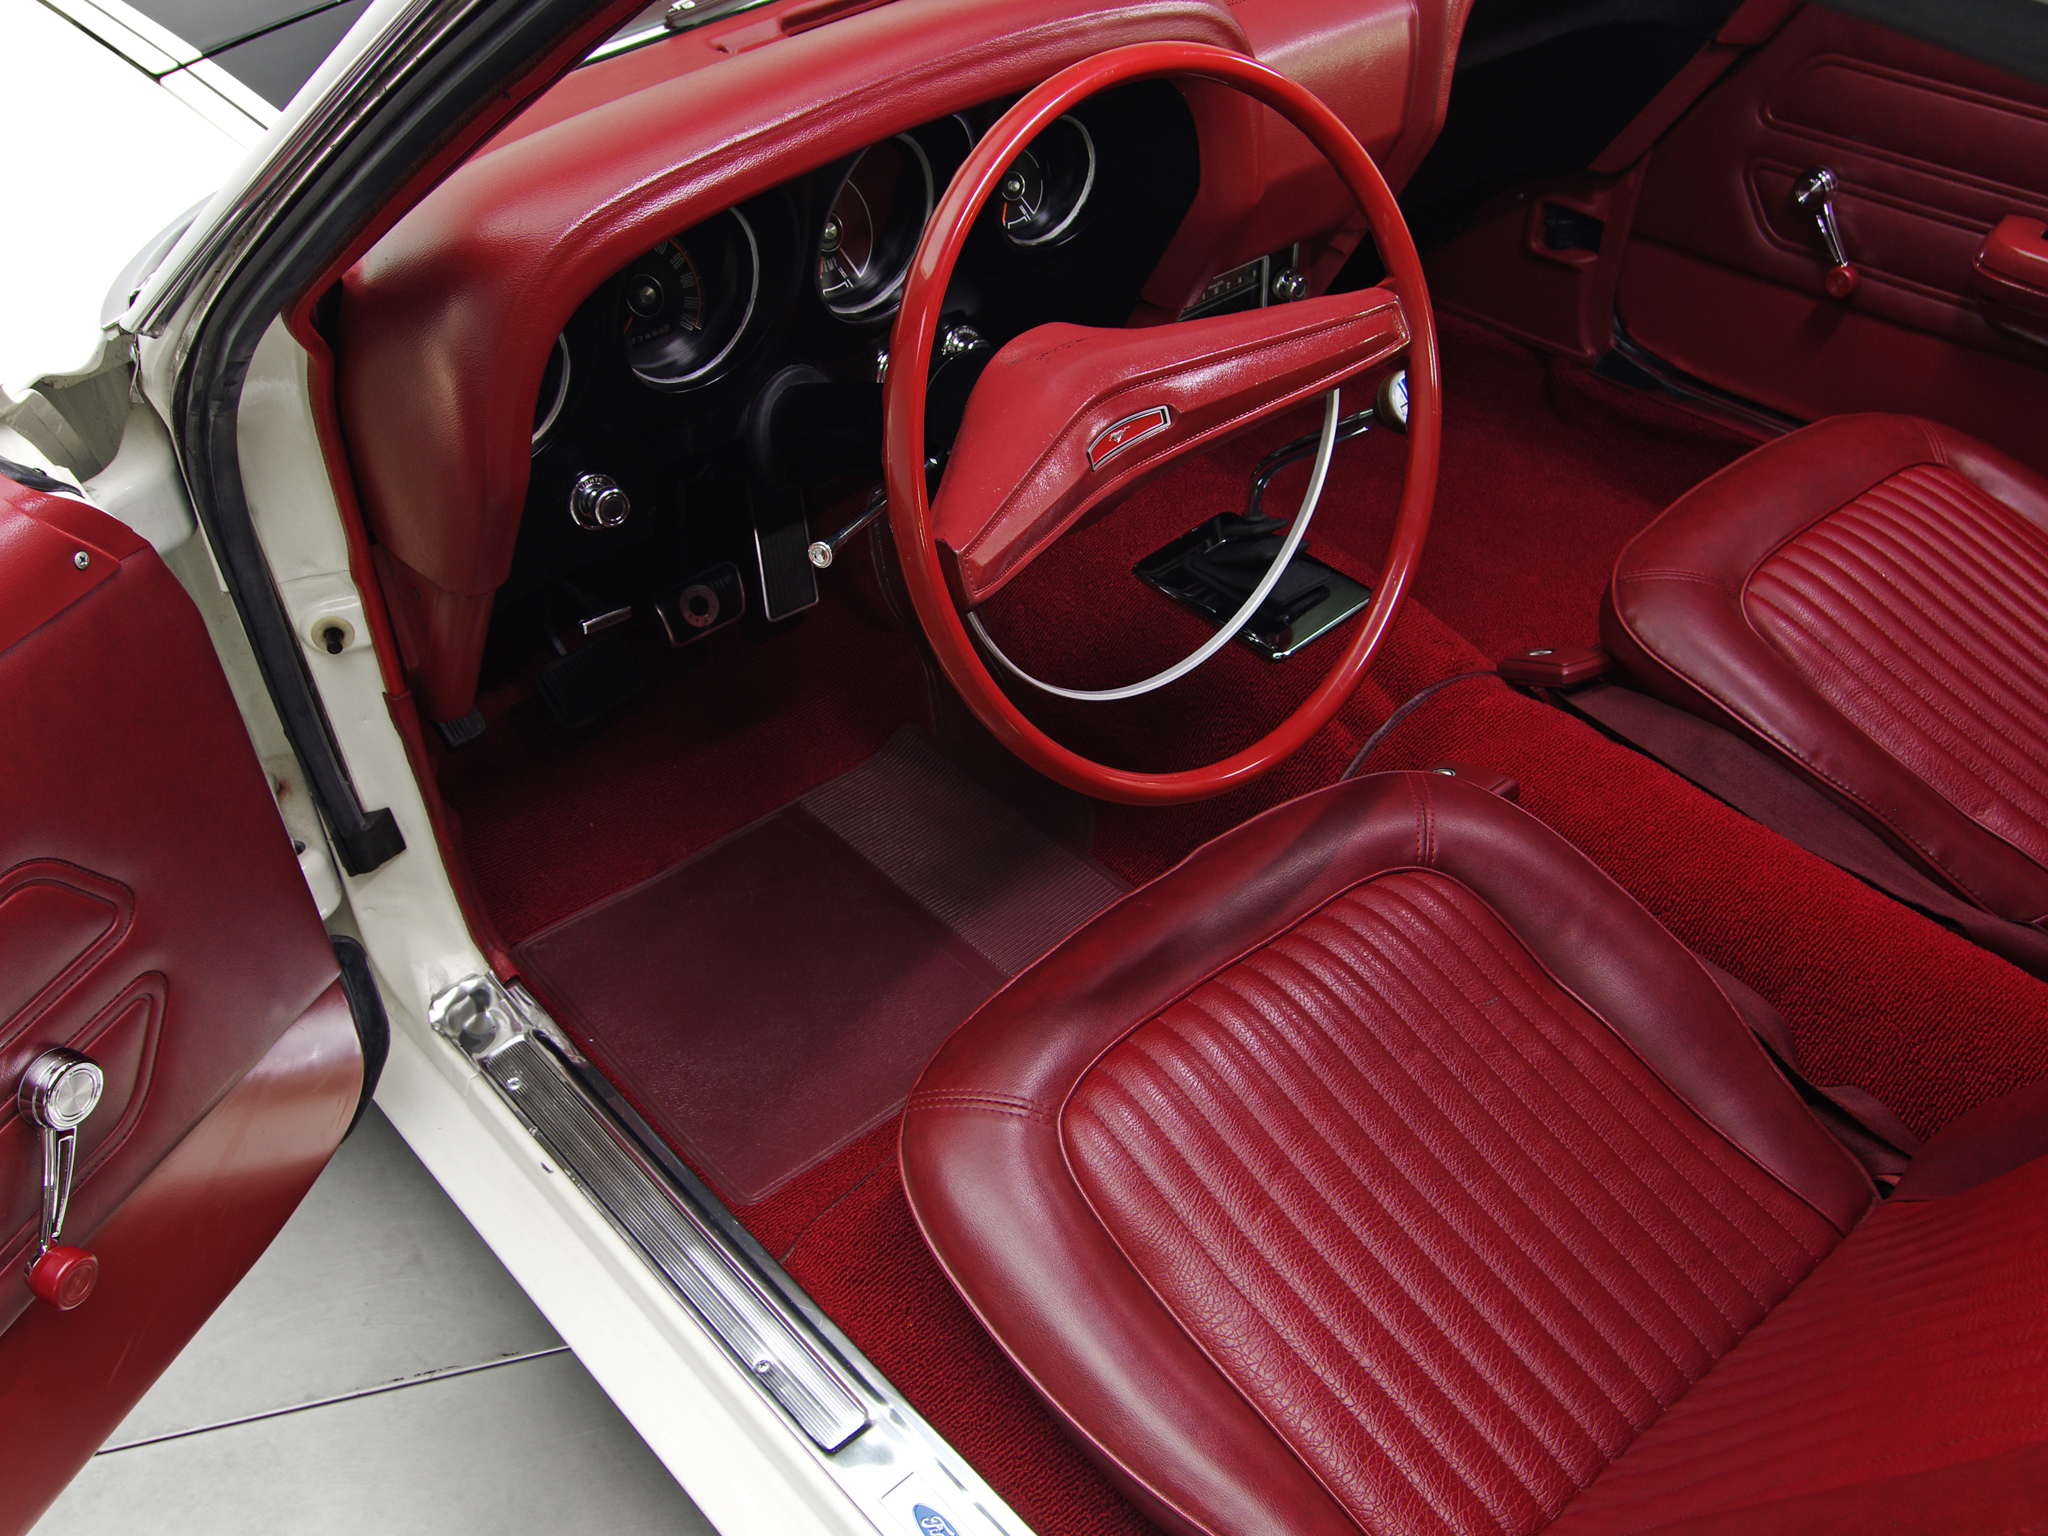 Ford Muscle Cars >> 1969 Ford Mustang Boss 302 muscle classic interior wallpaper | 2048x1536 | 114841 | WallpaperUP